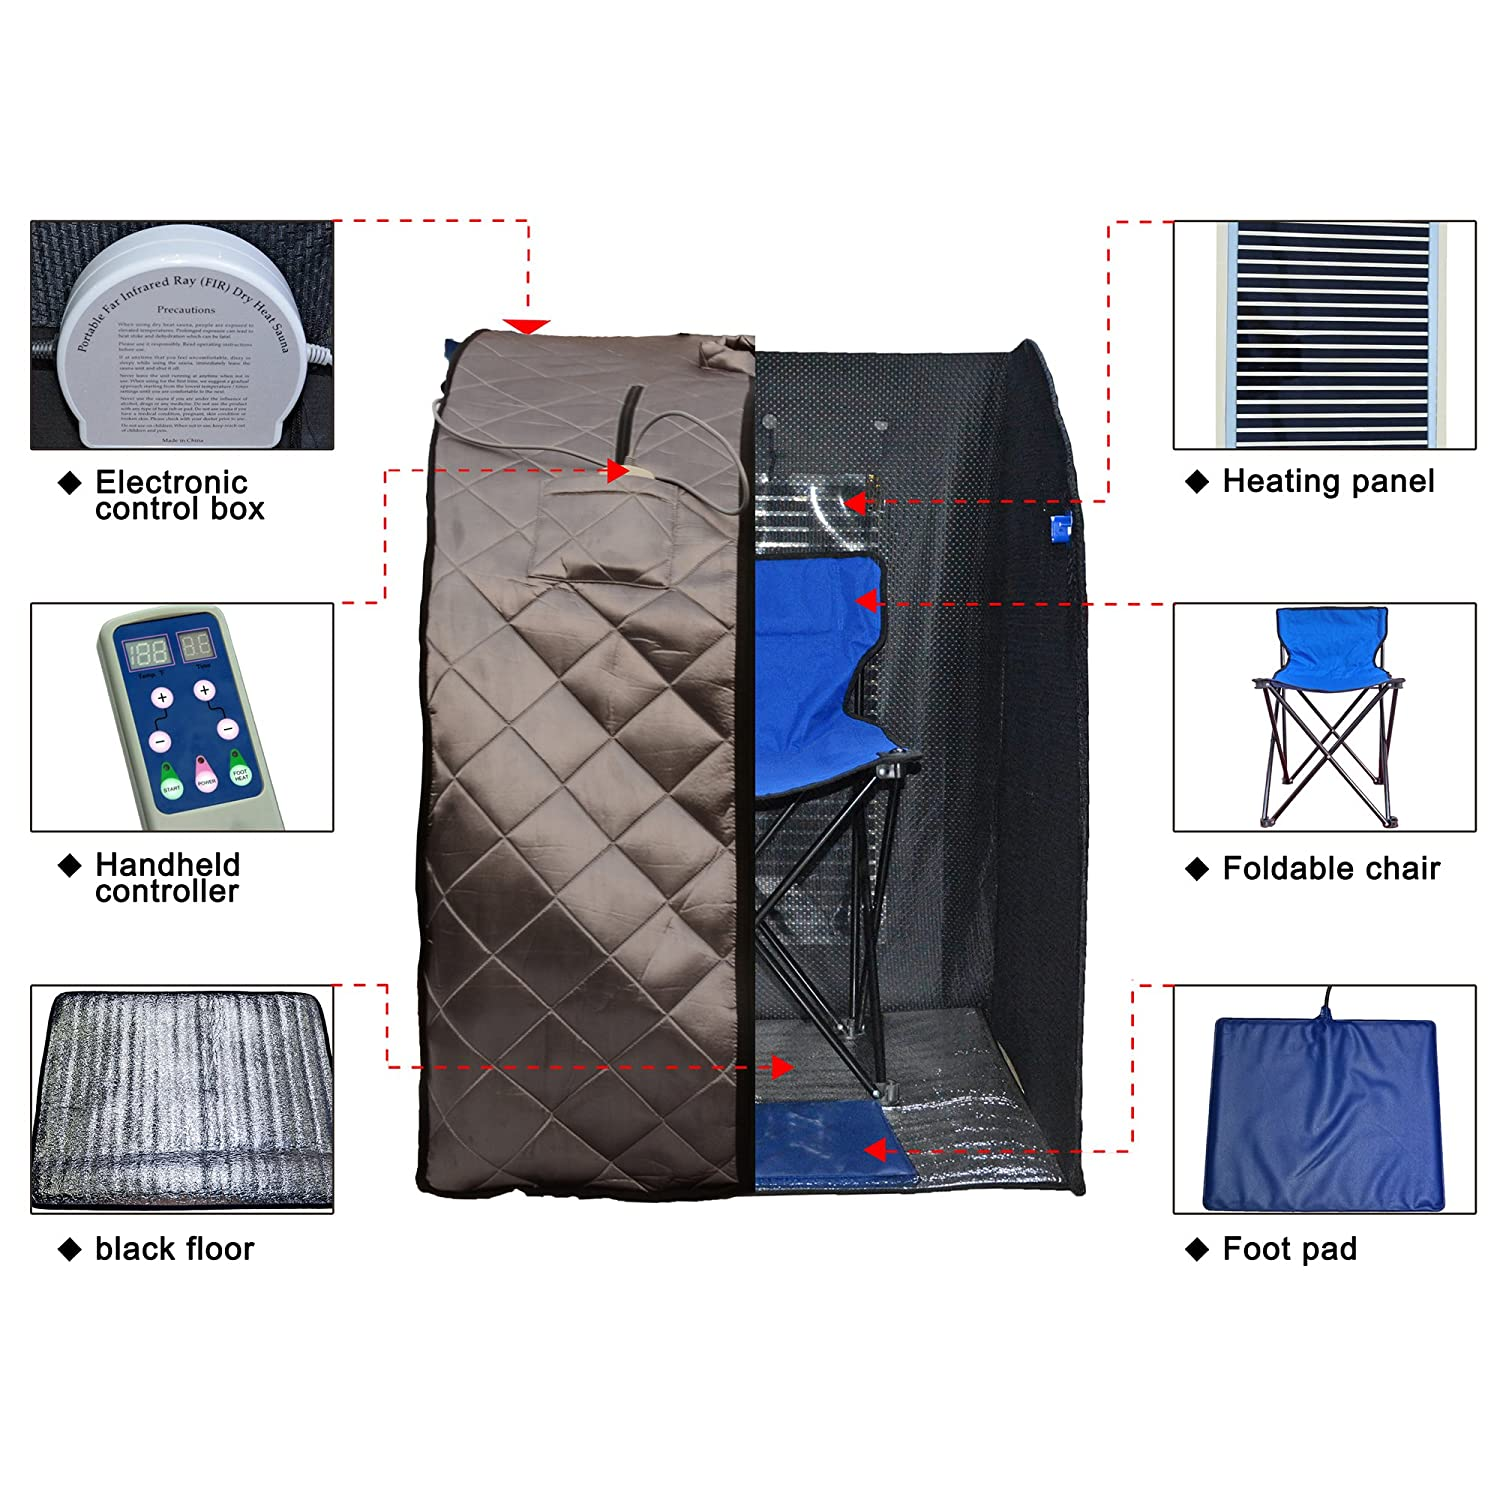 Best Portable Infrared Sauna Buying Guide